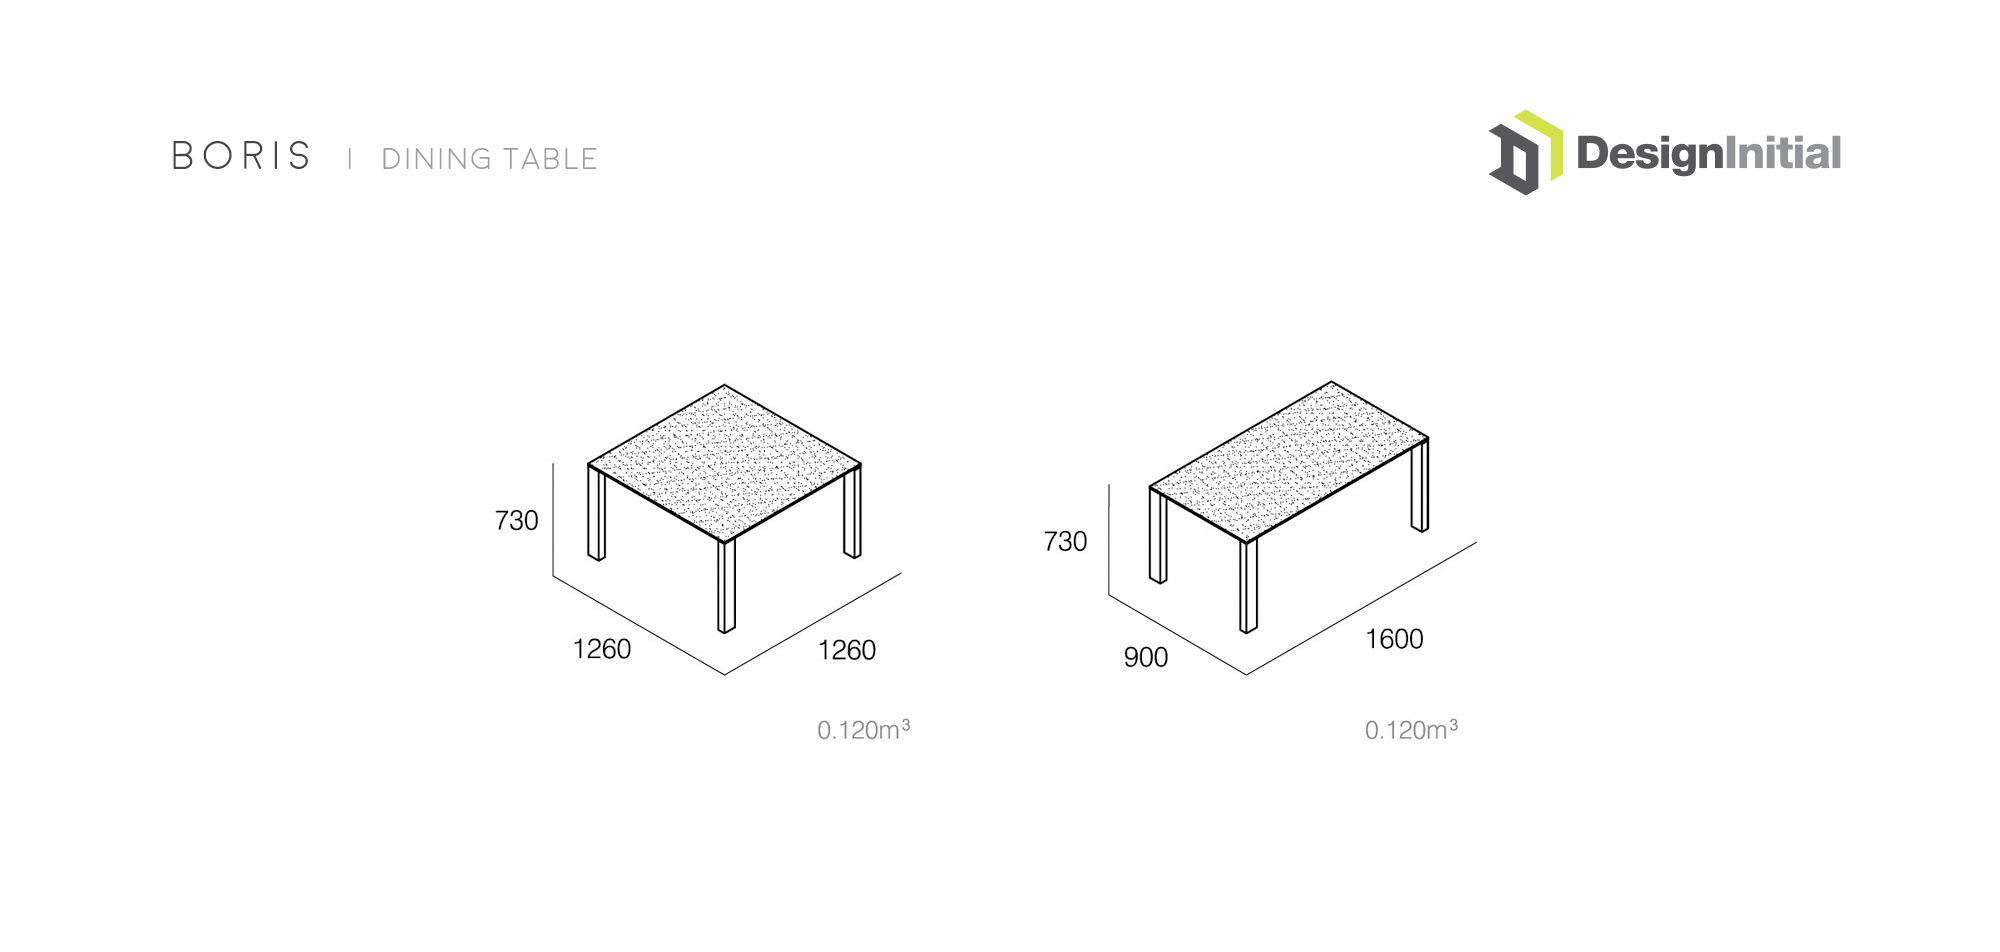 Boris Dining Table Specifications